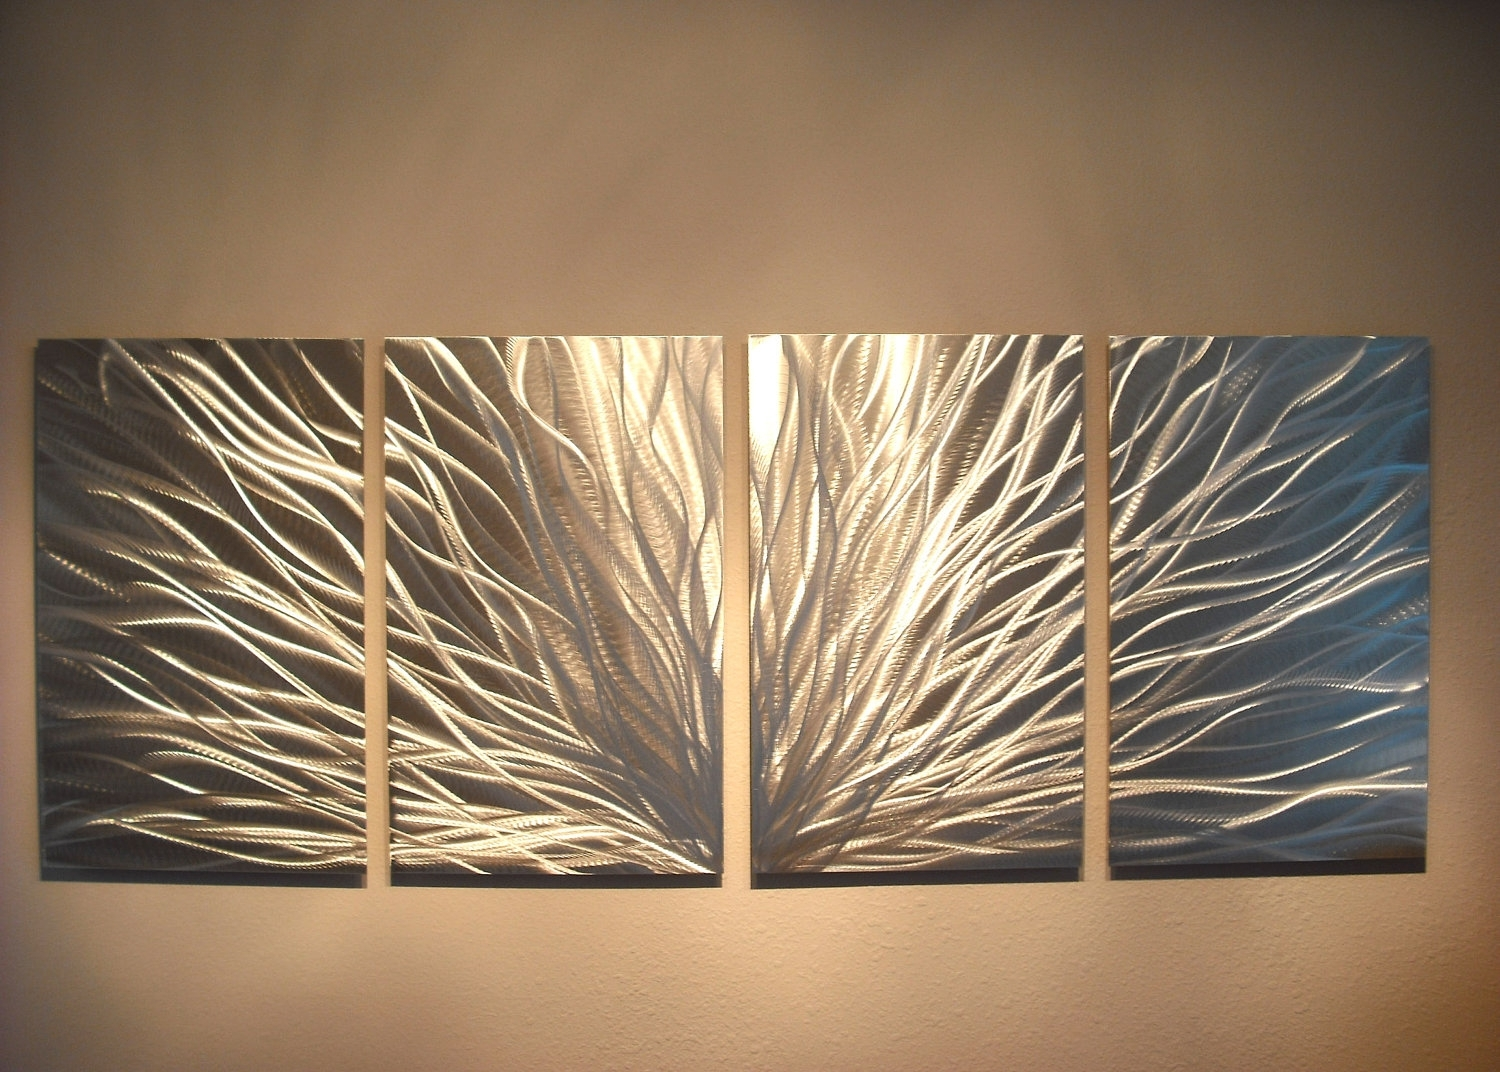 Radiance - Abstract Metal Wall Art Contemporary Modern Decor inside Metal Wall Art (Image 16 of 20)